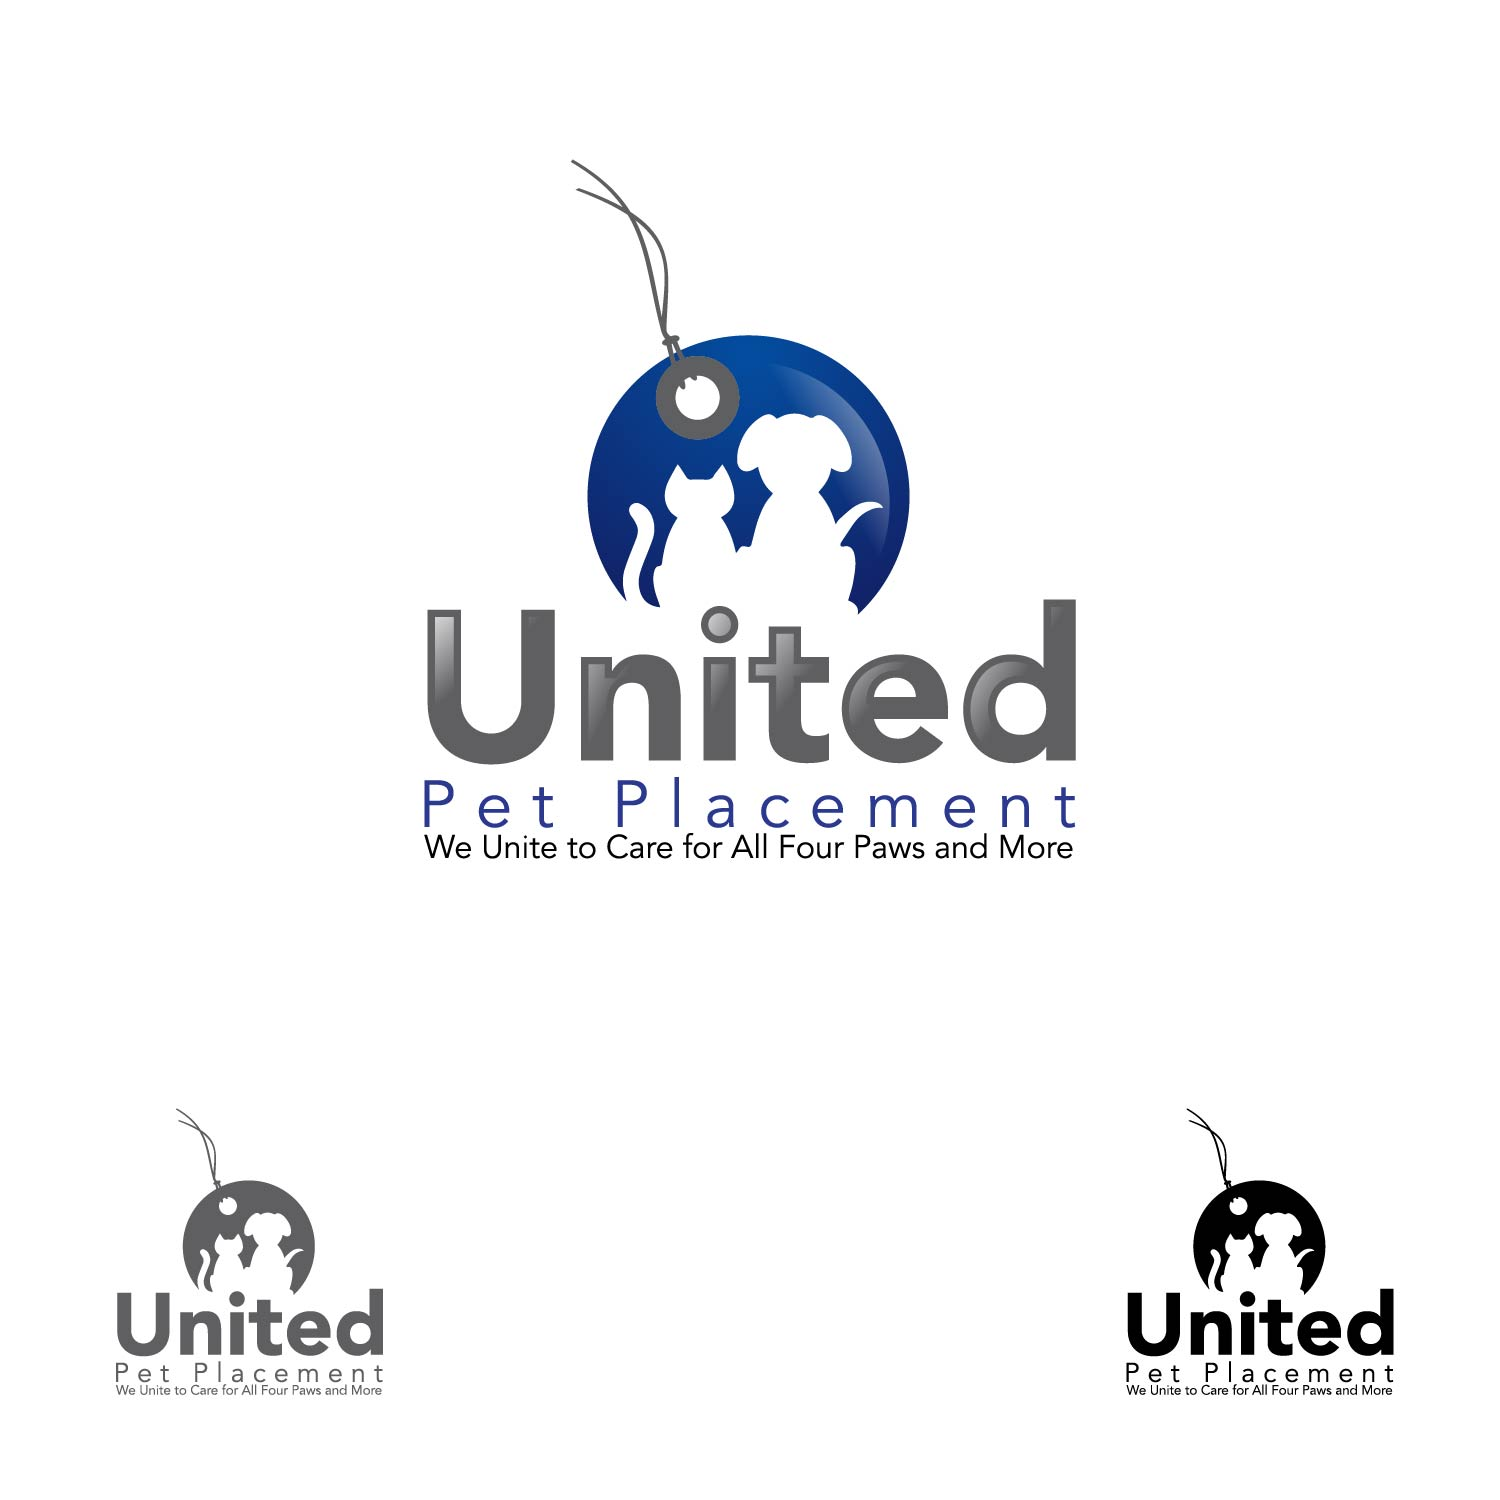 Logo Design by lagalag - Entry No. 20 in the Logo Design Contest Artistic Logo Design for united pet placement.